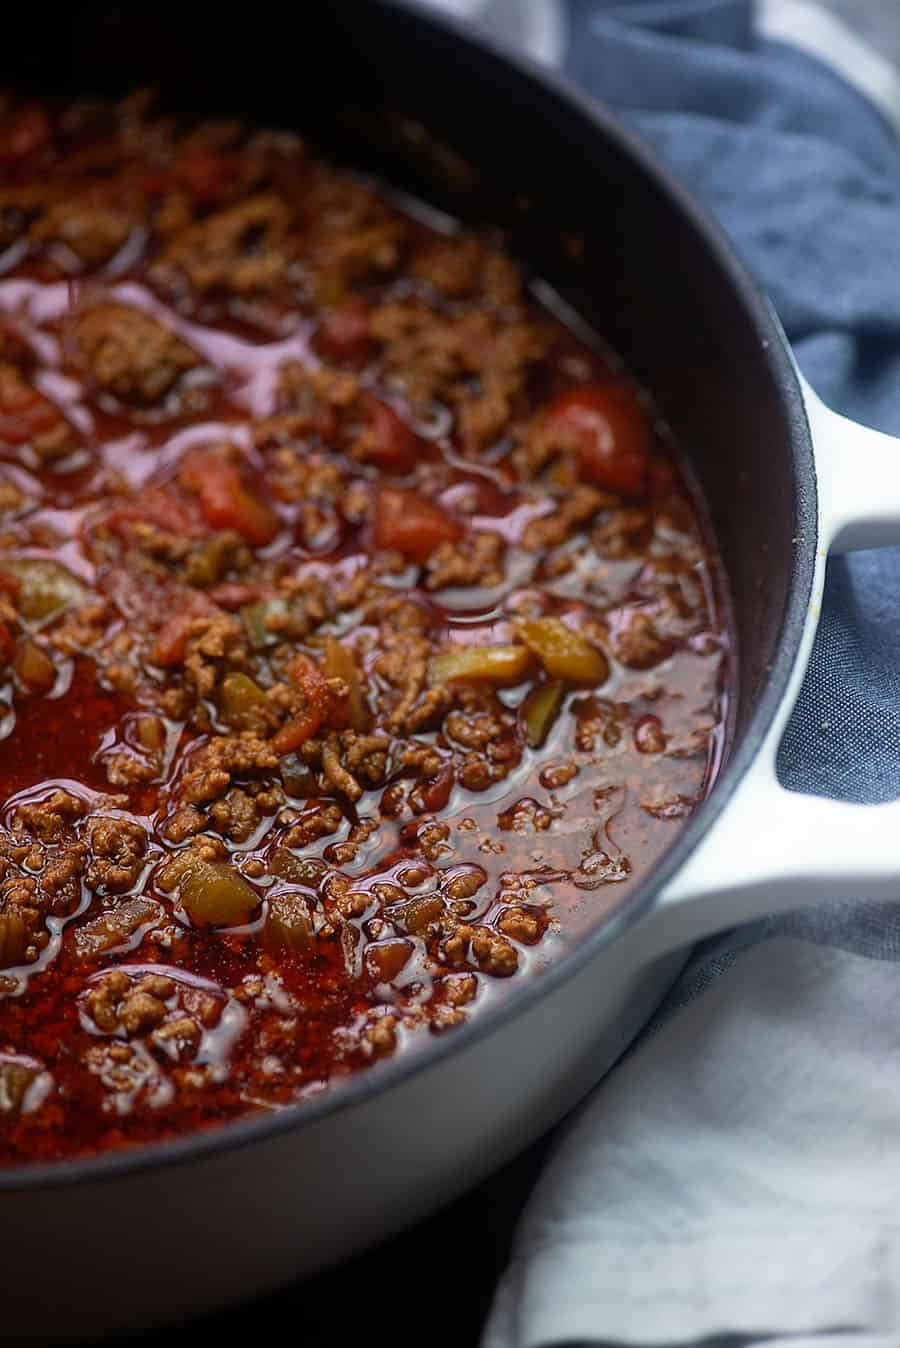 Keto Chili | That Low Carb Life